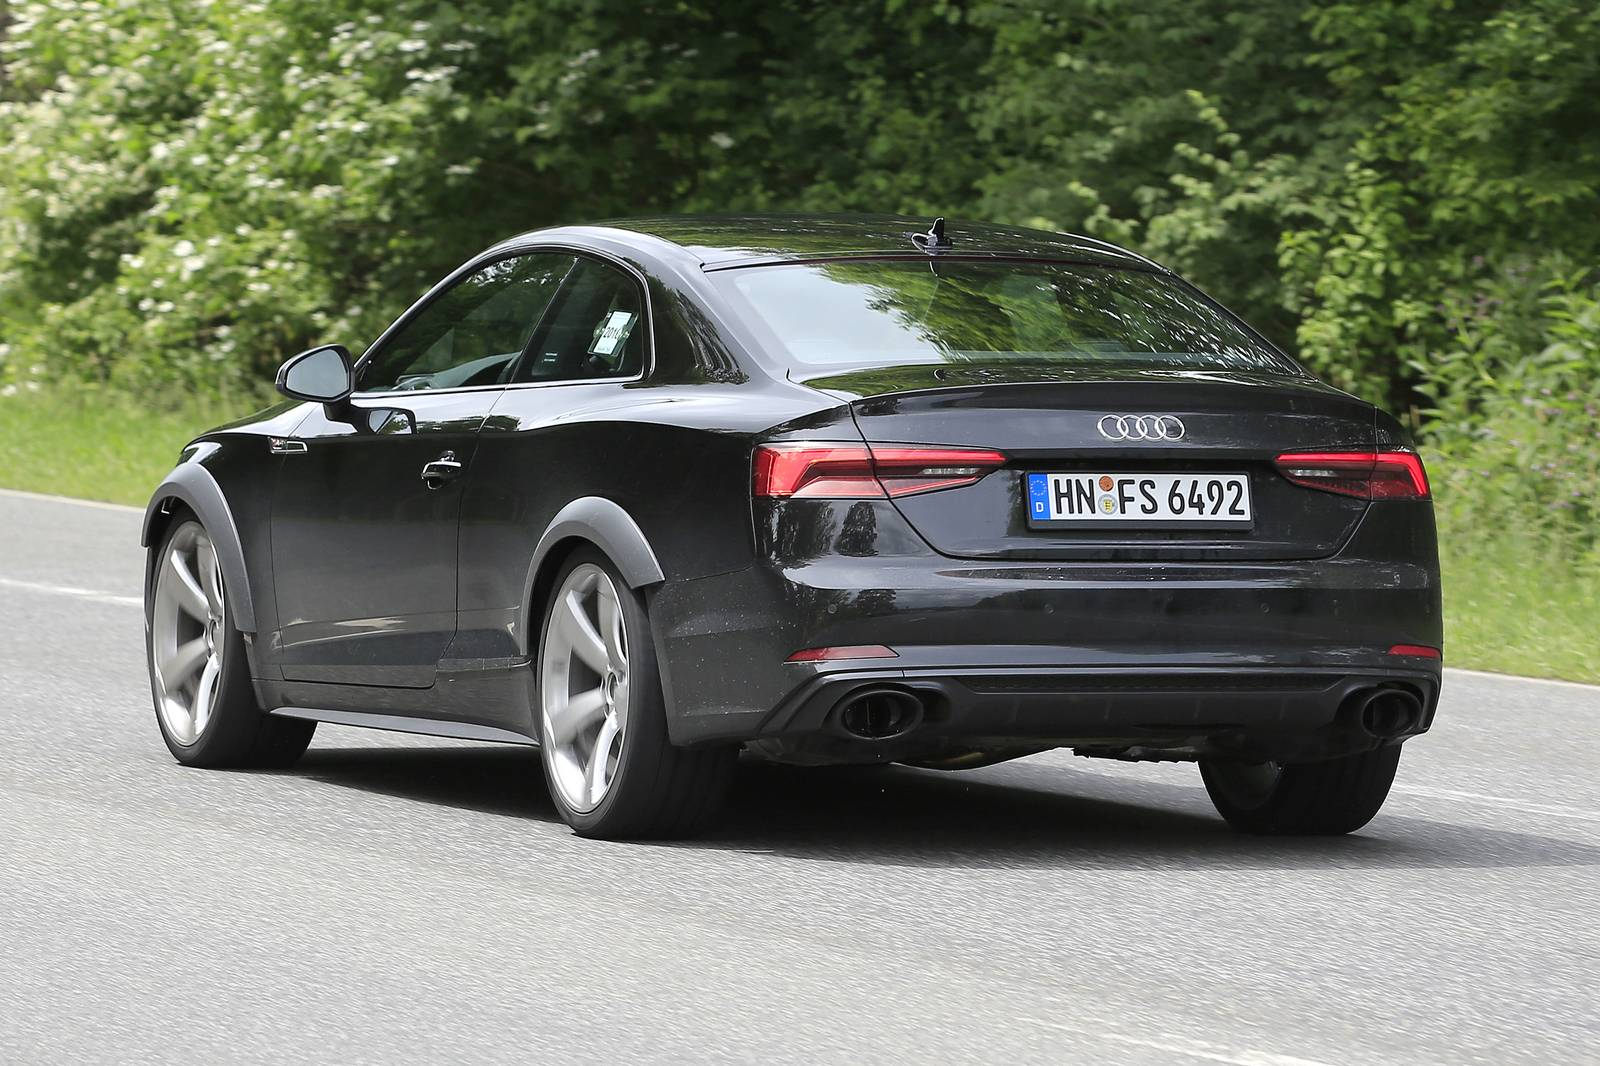 2018 Audi Rs5 Test Mule Spy Shots Gtspirit